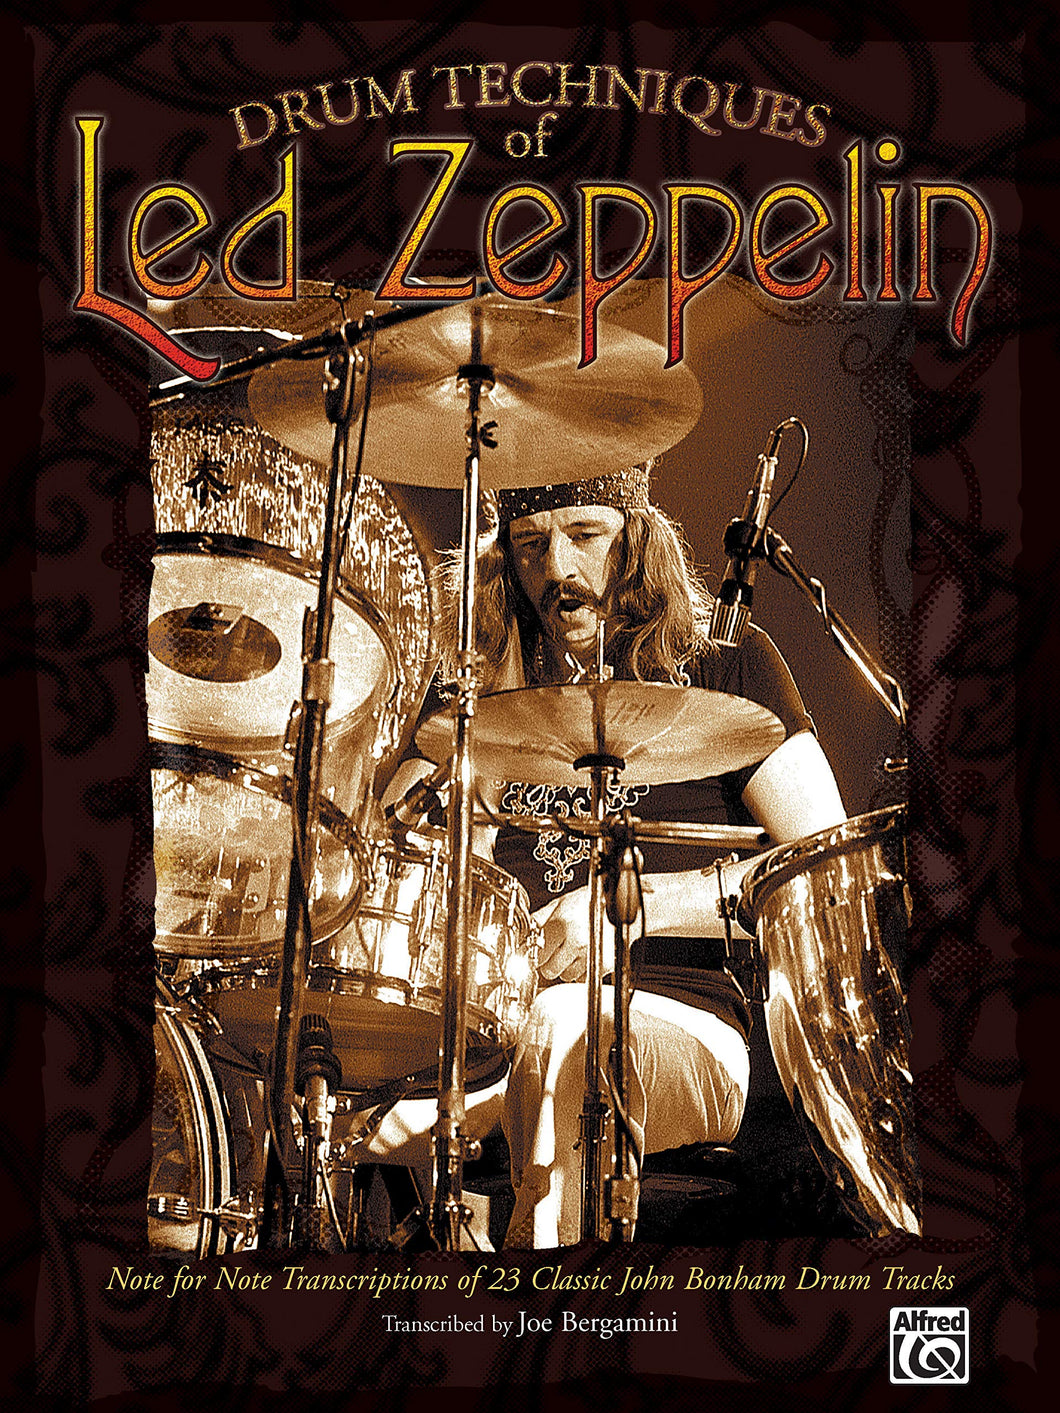 The Song Remains the Same - Led Zeppelin - Collection of Drum Transcriptions / Drum Sheet Music - Alfred Music DTLZNFNT